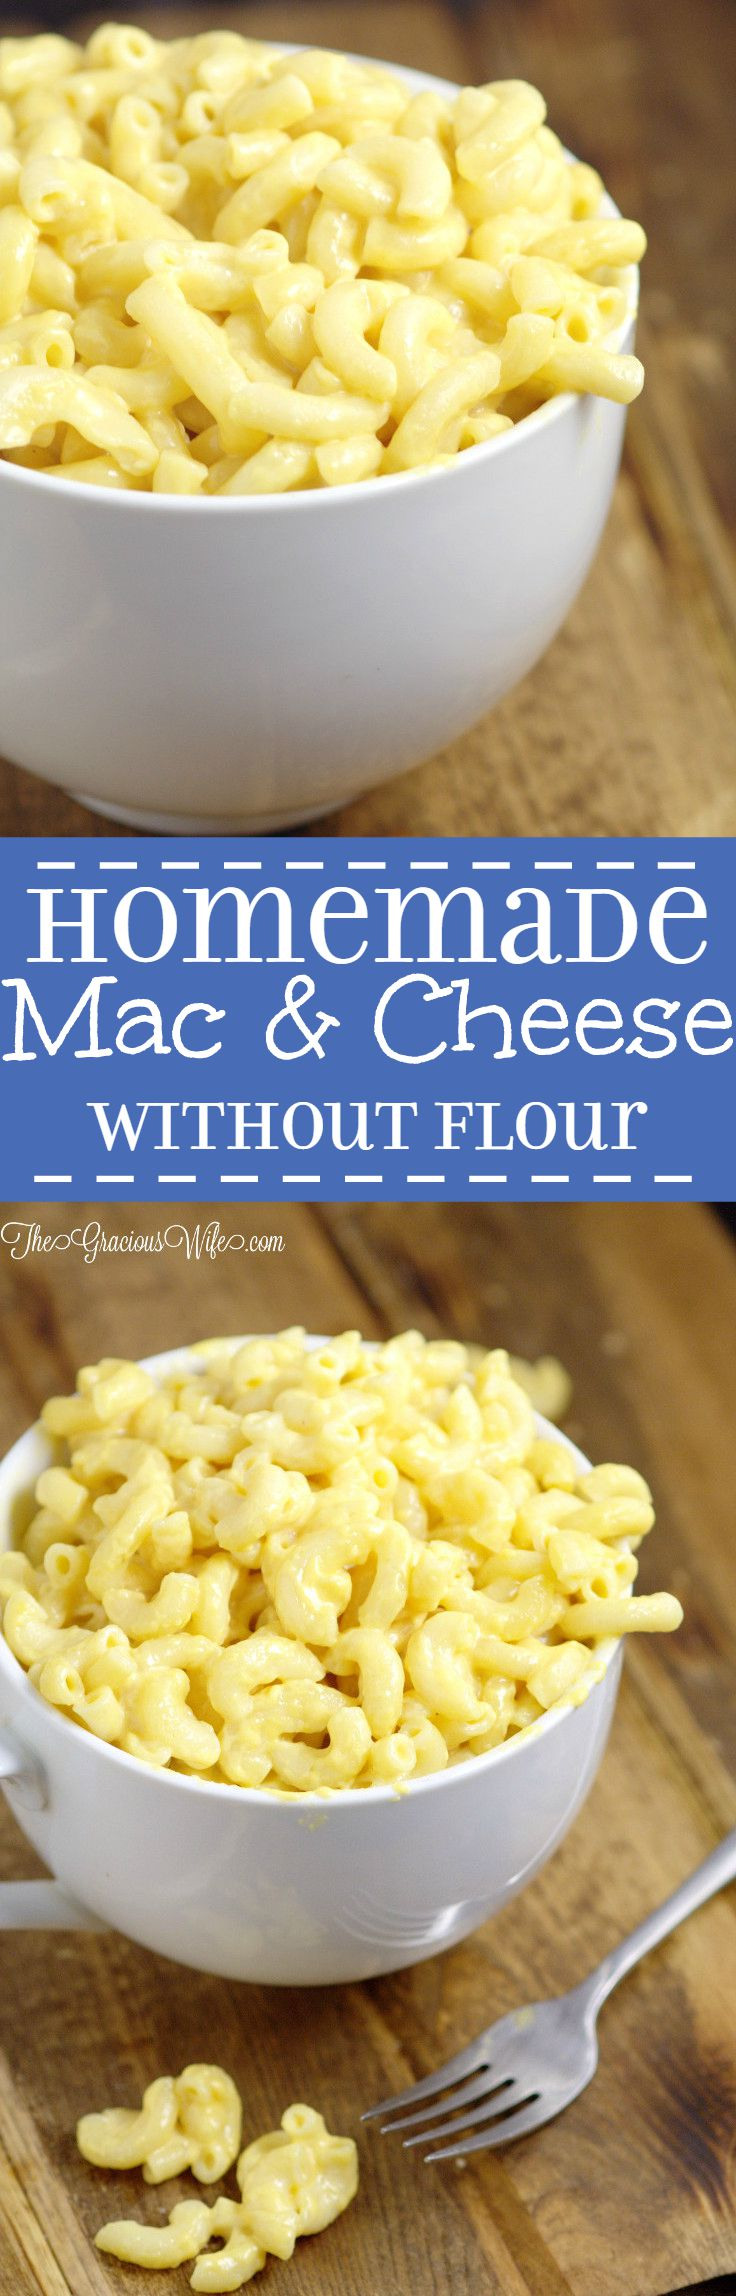 Mac and Cheese without Flour! - An easy, creamy mac and cheese recipe that makes a great side dish recipe or dinner recipe idea, made without flour or